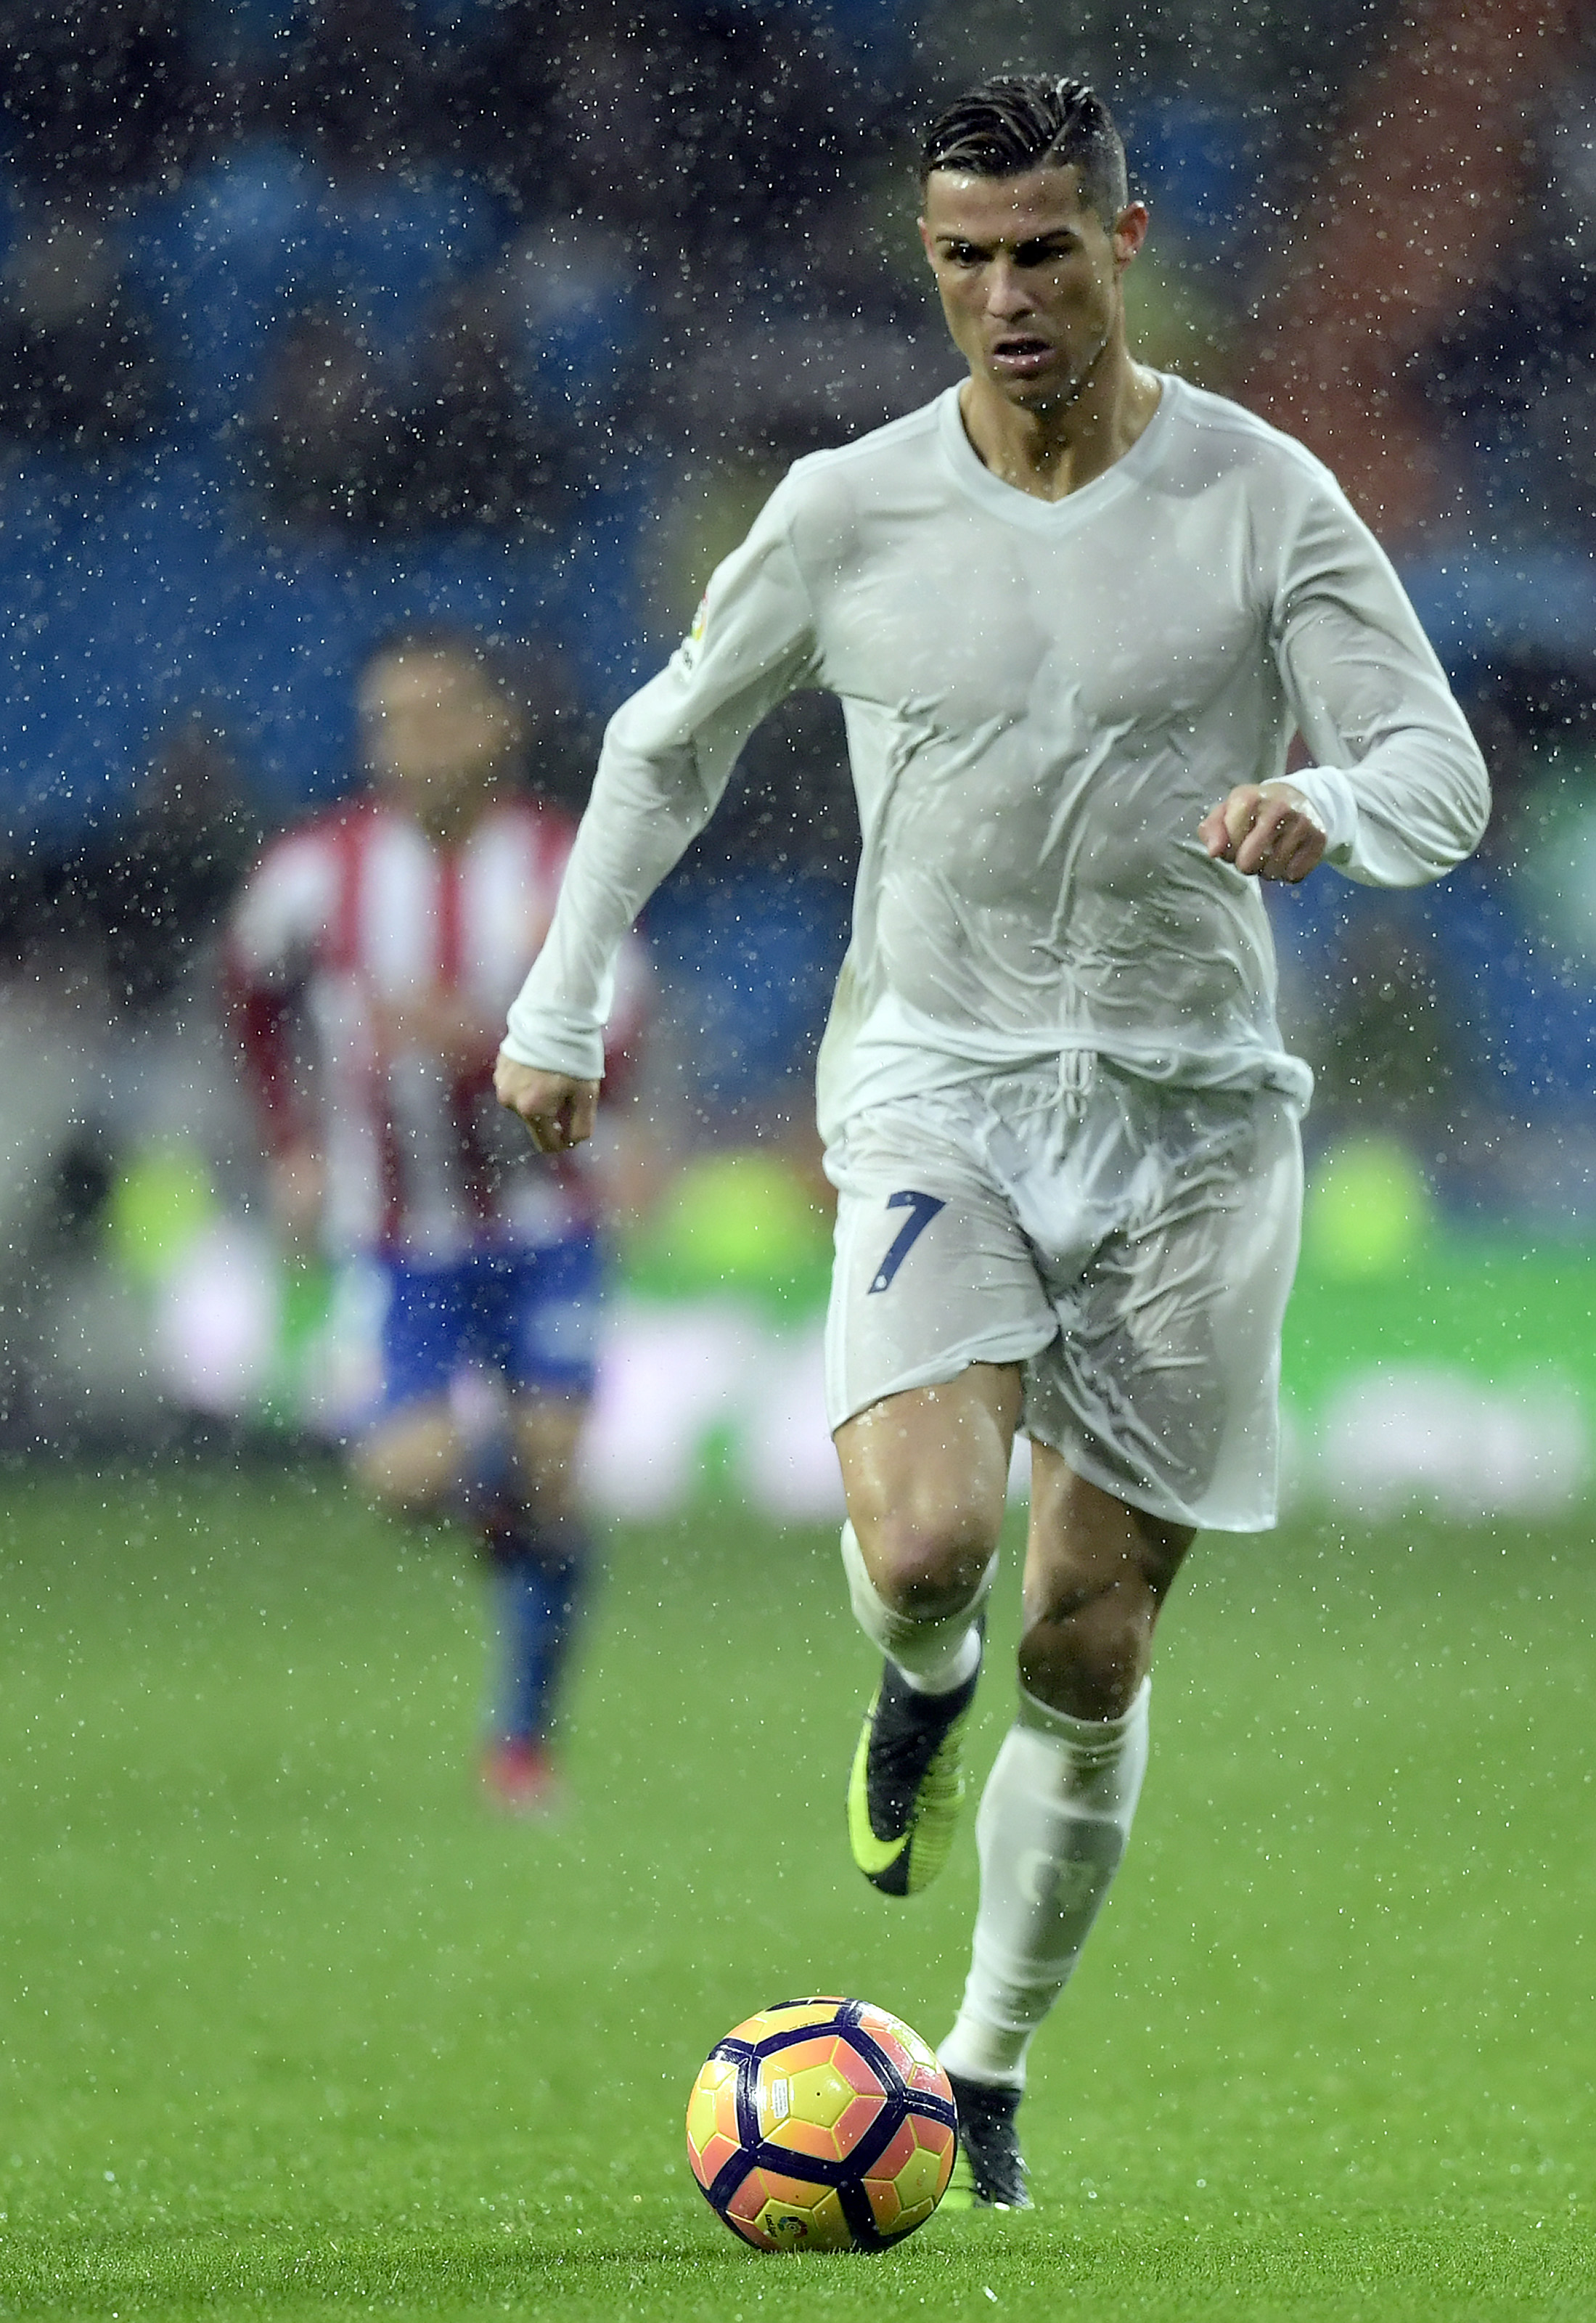 842d5b63c Why did Real Madrid wear recycled shirts